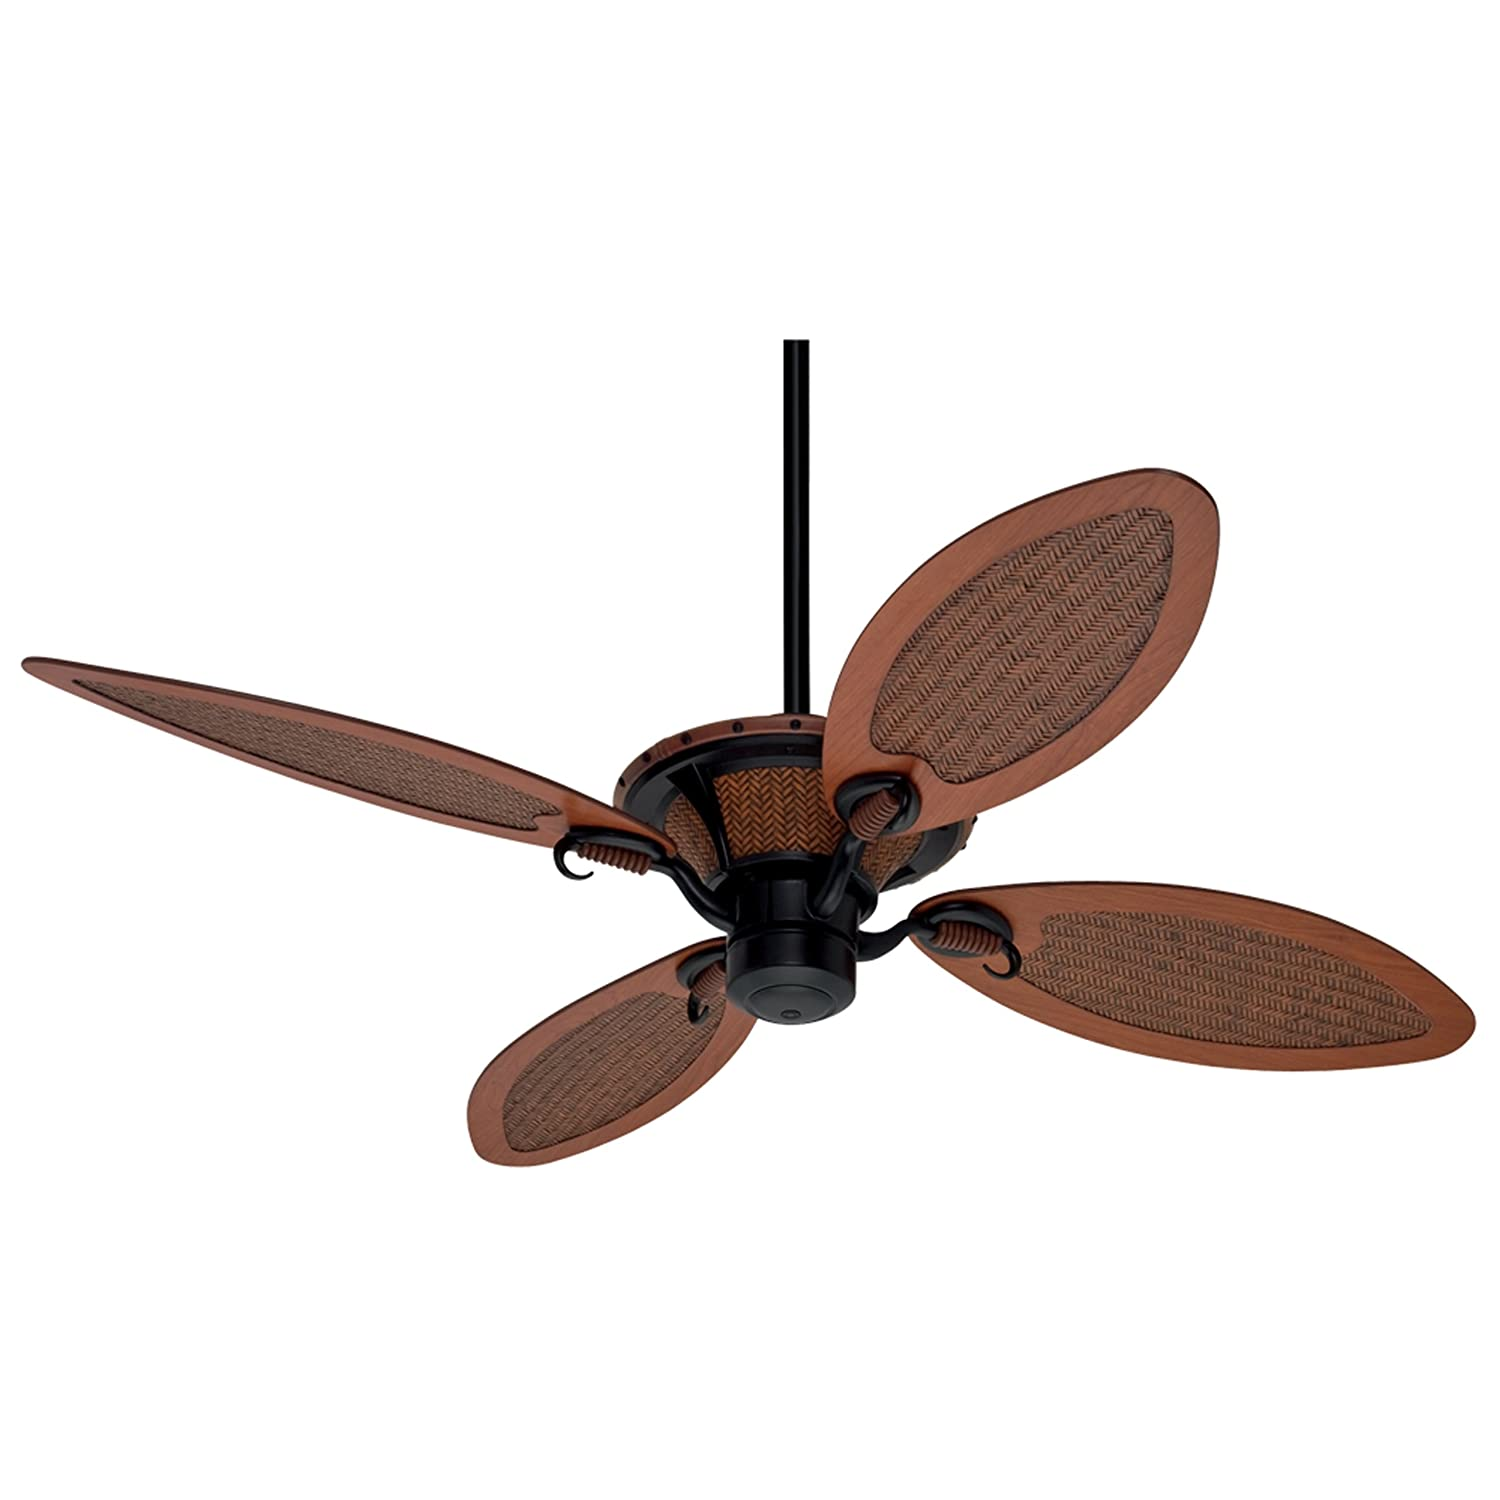 Hunter Royal Palm 56 Inch Ceiling Fan with 4 Cherry Rattan